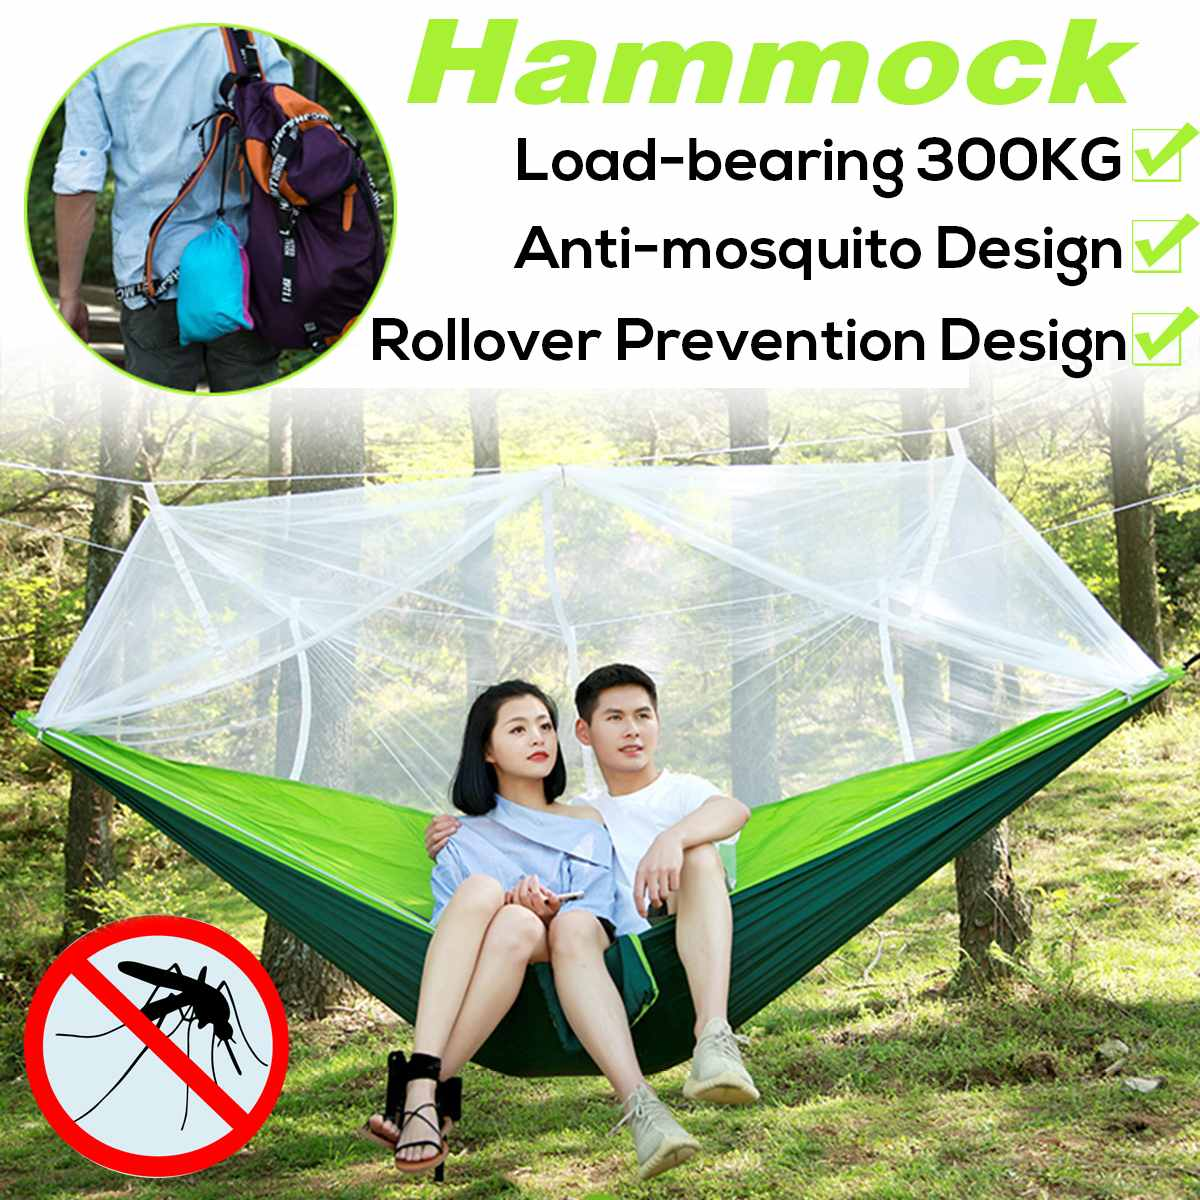 Portable Parachute Mosquito Net Hammock Tent Swing Outdoor Travel Camping Double Person Hanging Hammock Bed Capacity 300KG